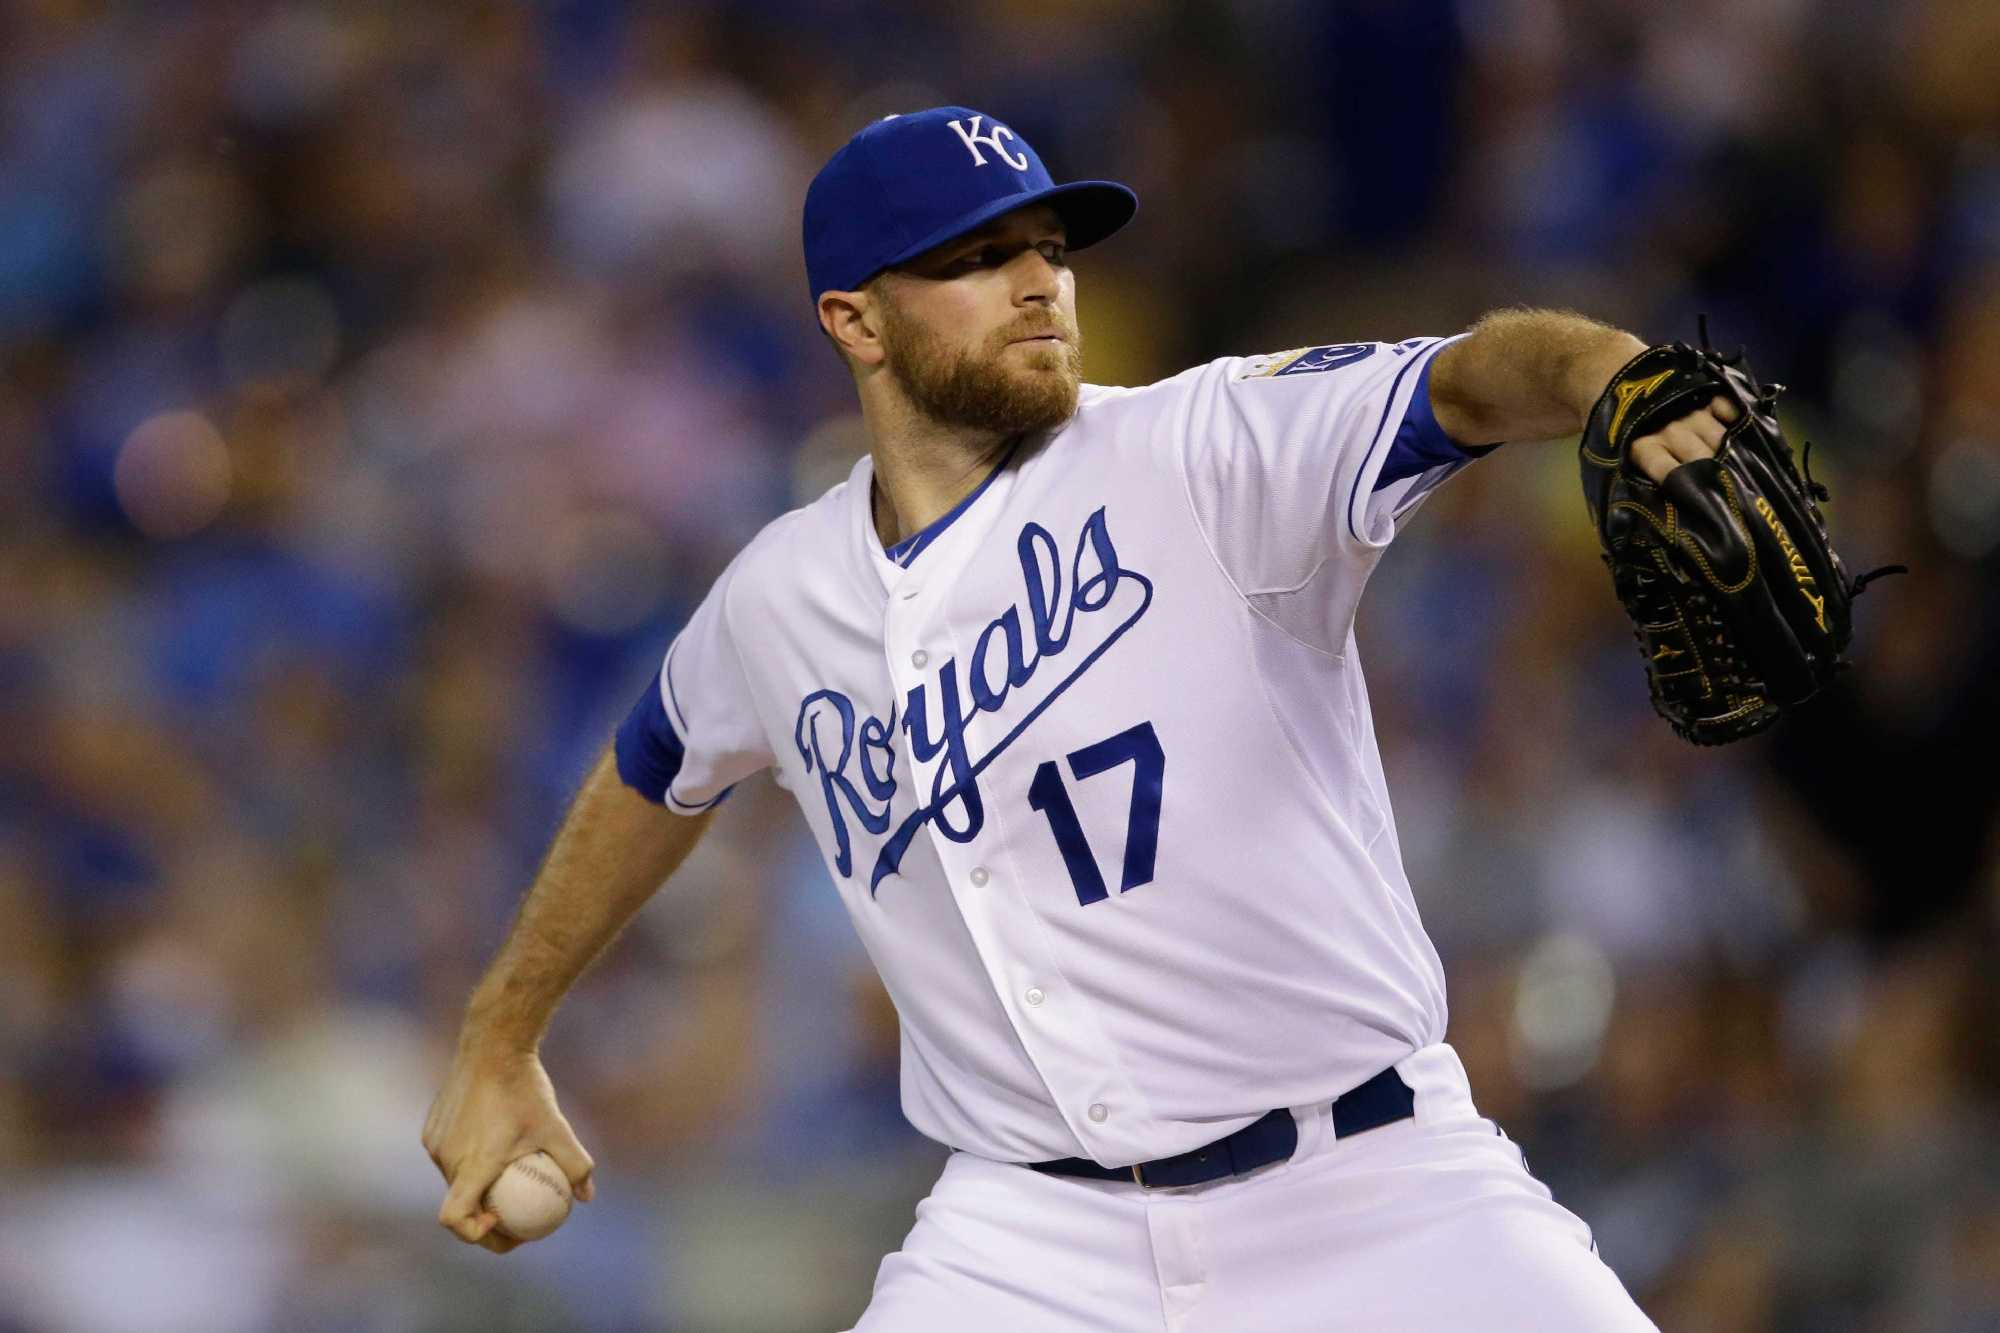 Colorado Rockies Land Wade Davis as New Closer